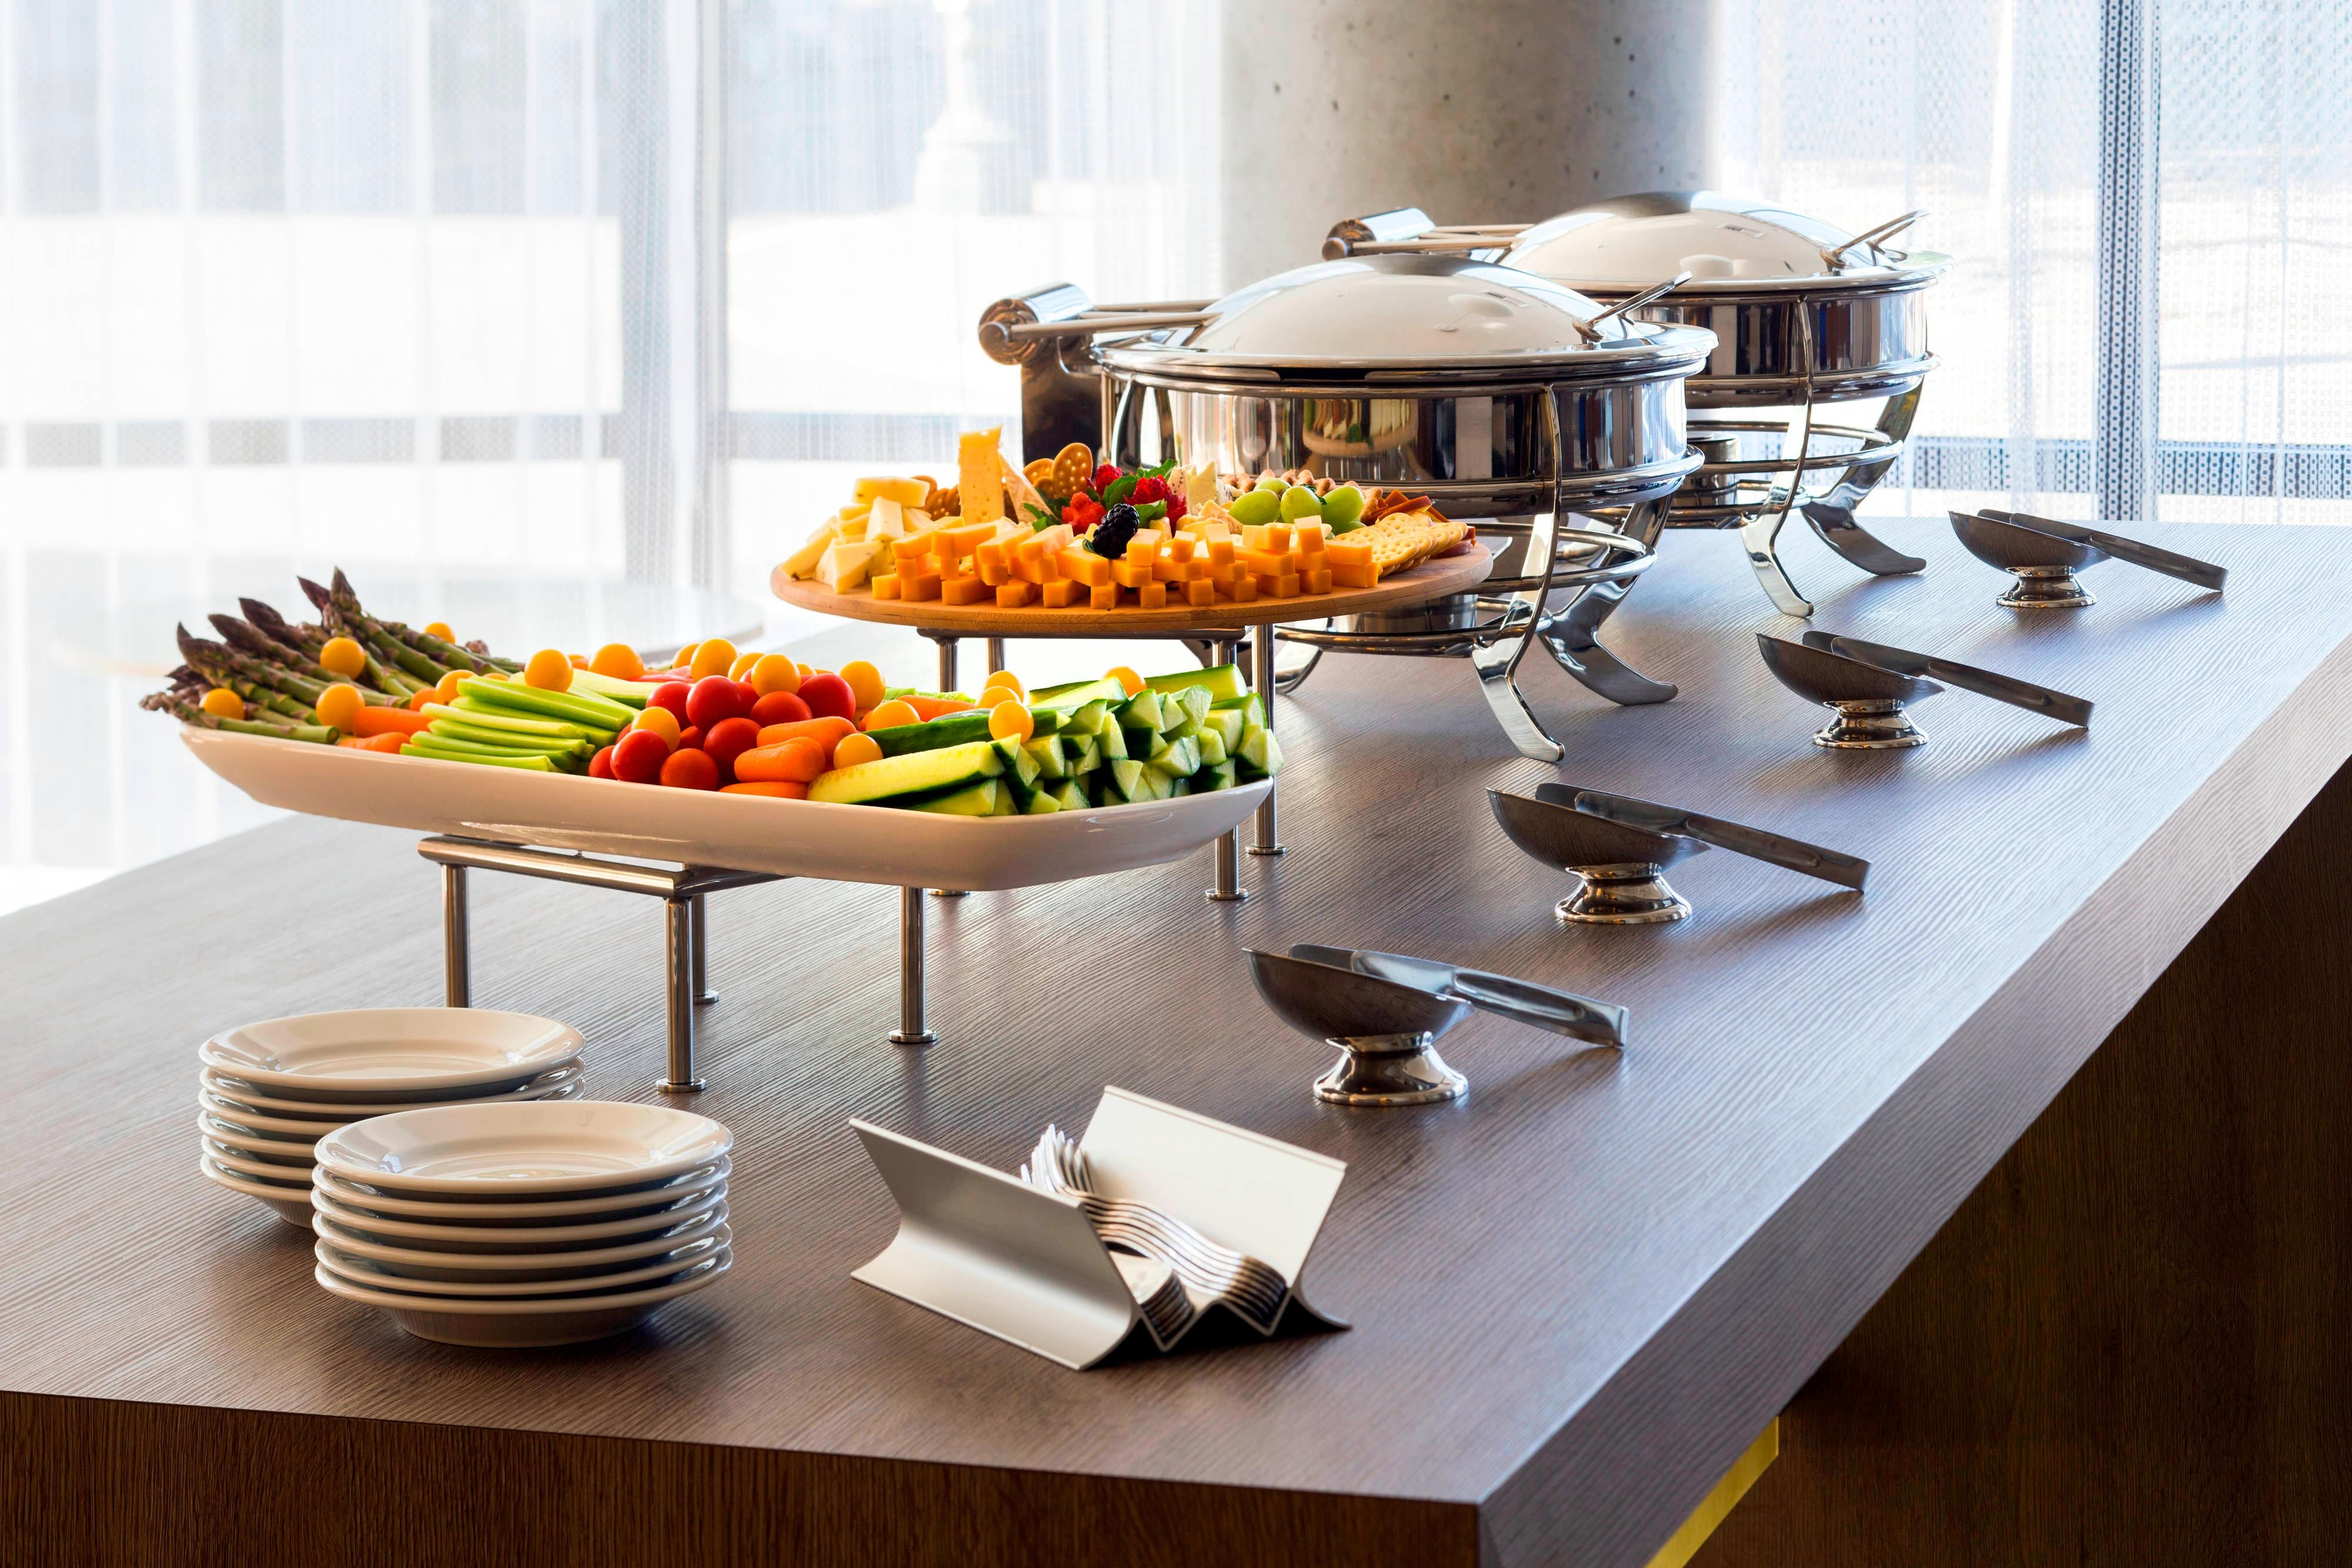 Lot 4 Urban Eatery Catering Buffet